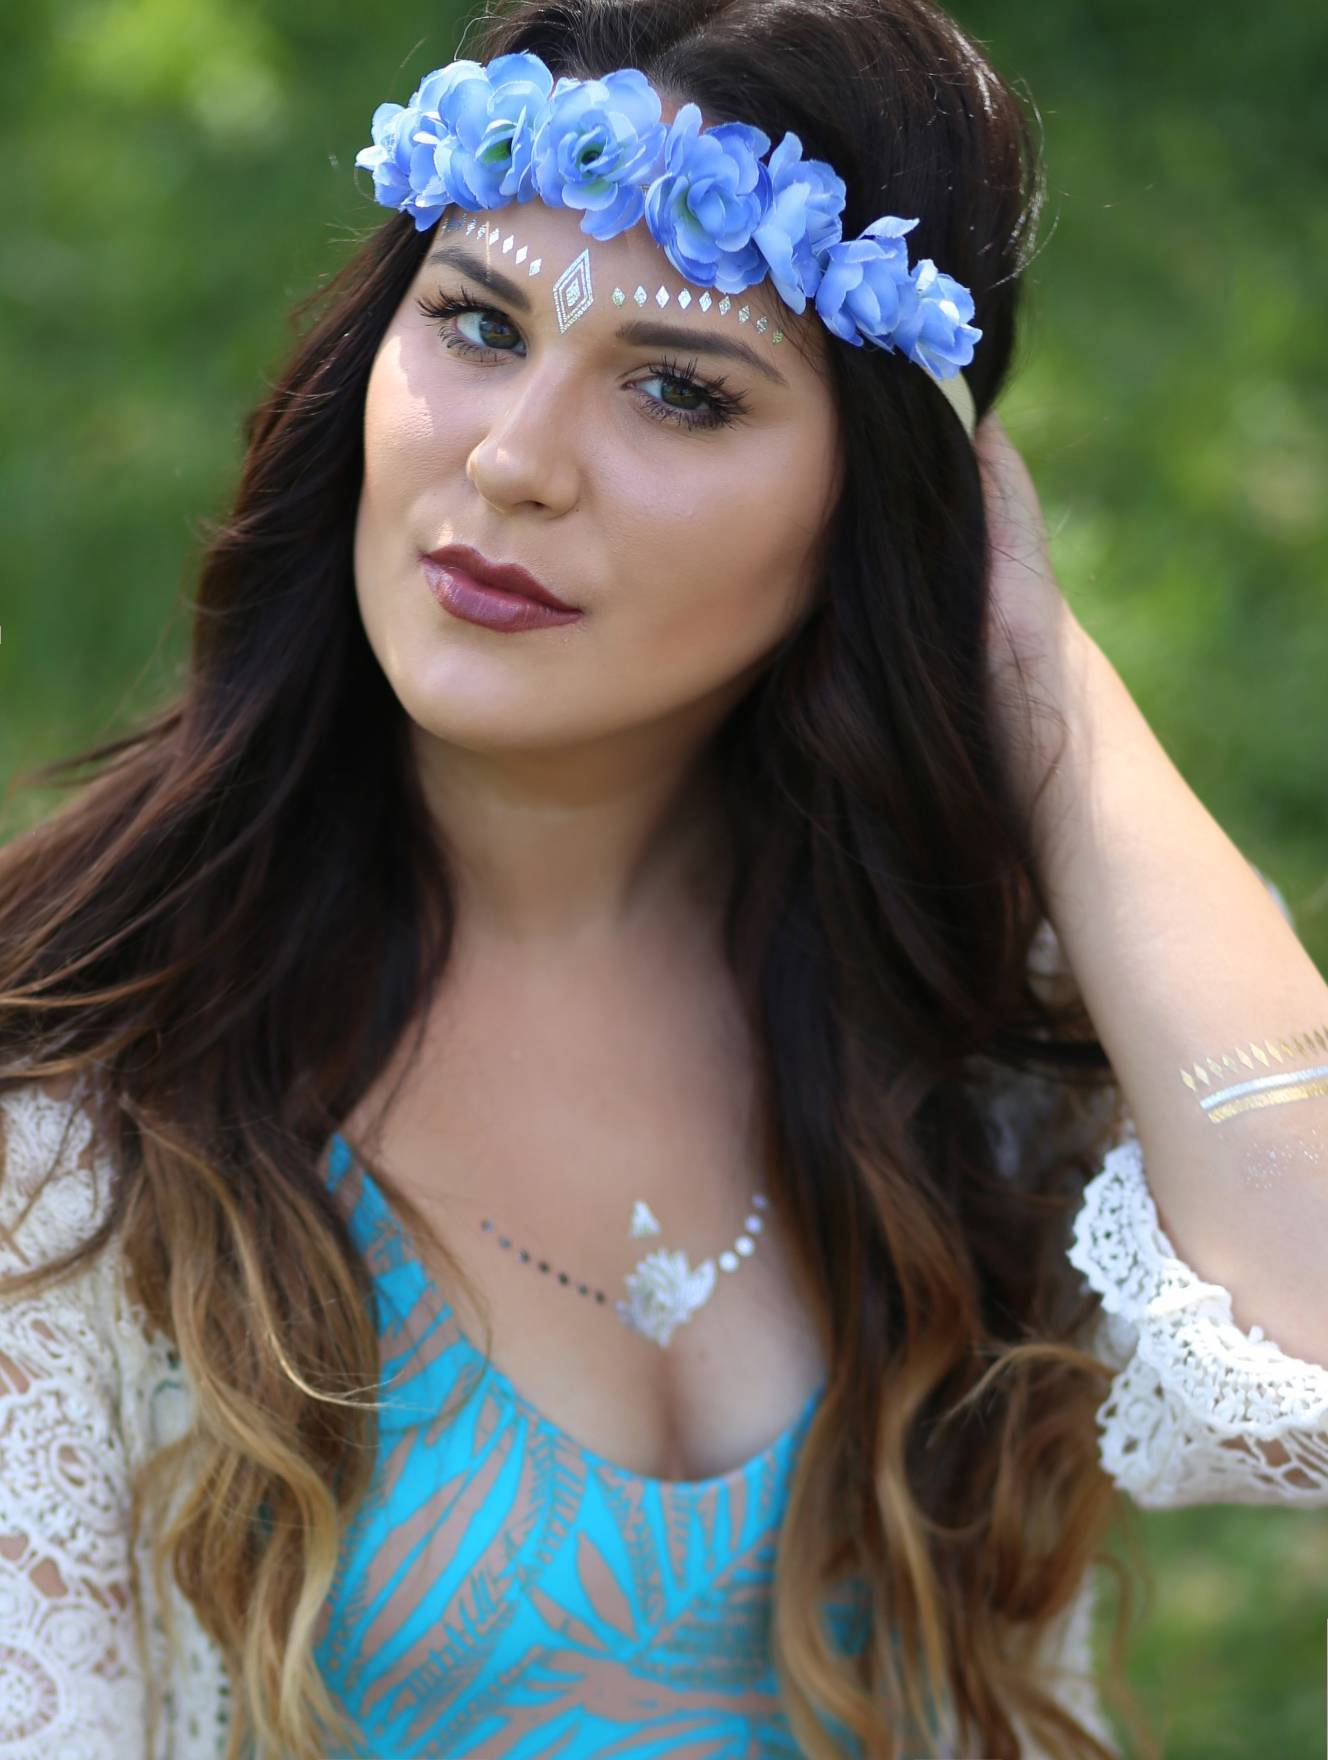 how to wear and style flash tattoos | festival outfit ideas | Target | Target fashion | beauty blogger Mash Elle | boho style | festival outfits | festival style coachella outfit ideas